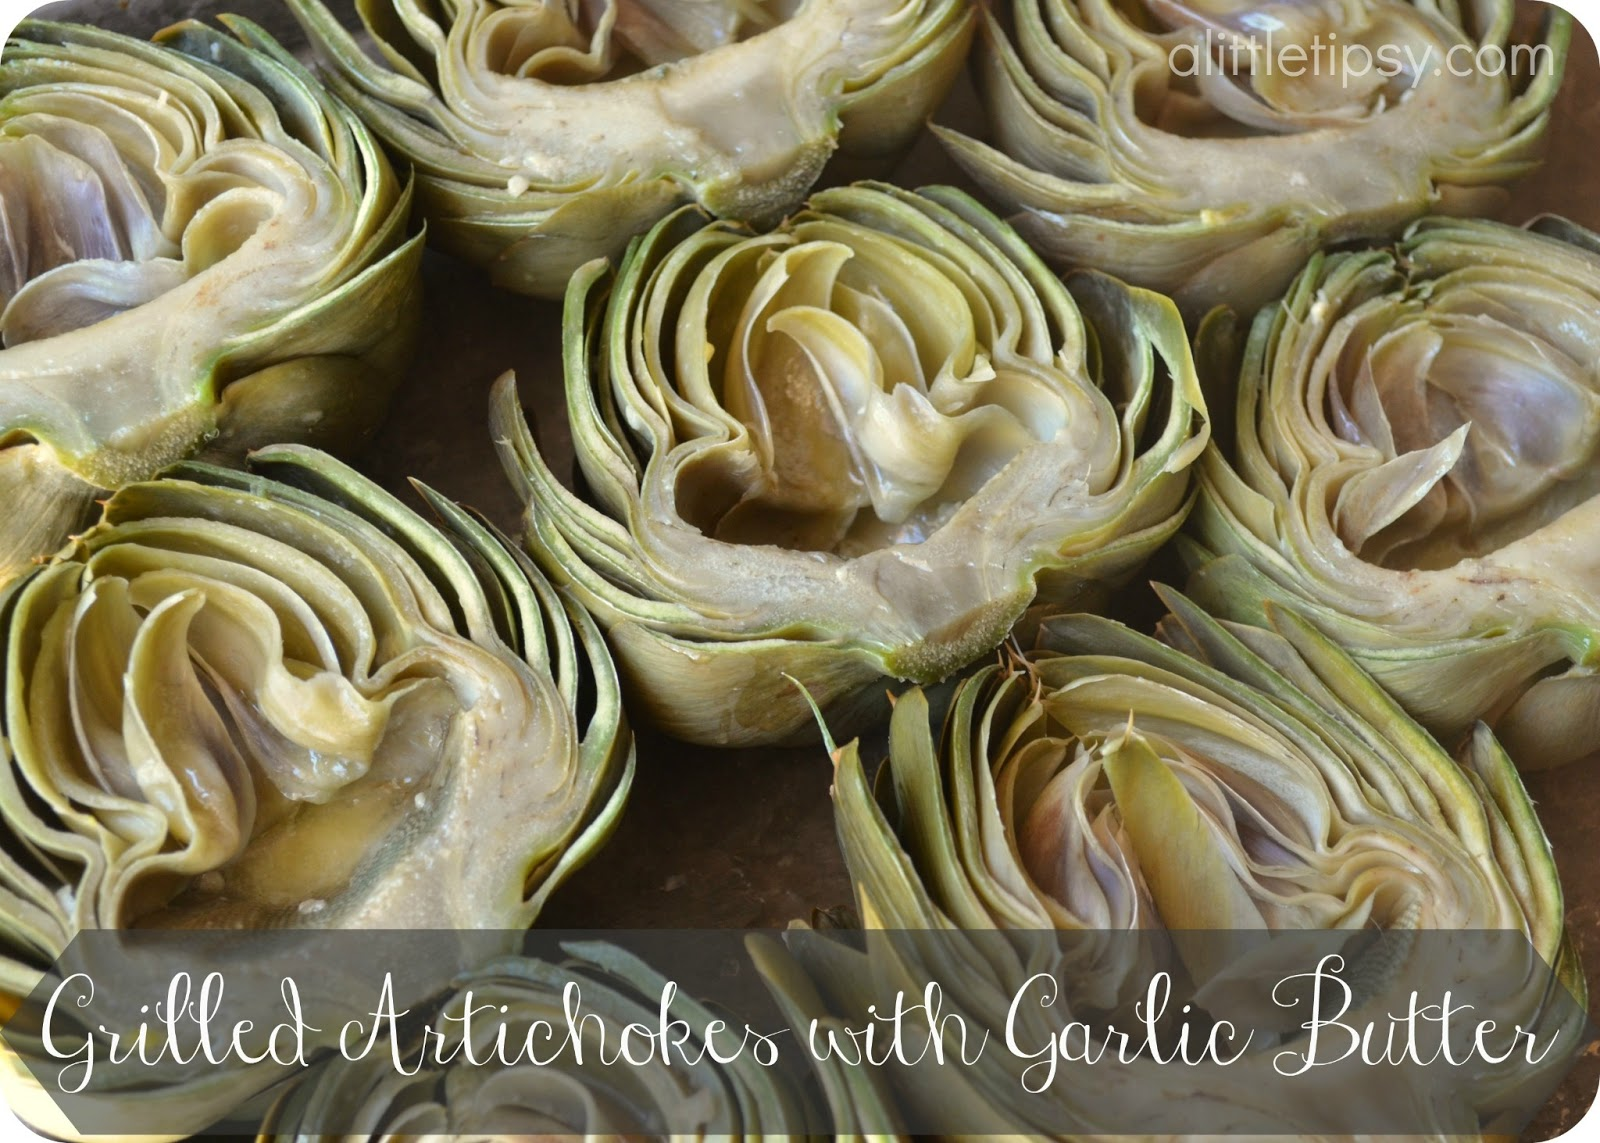 Grilled Artichokes with Garlic Butter - A Little Tipsy